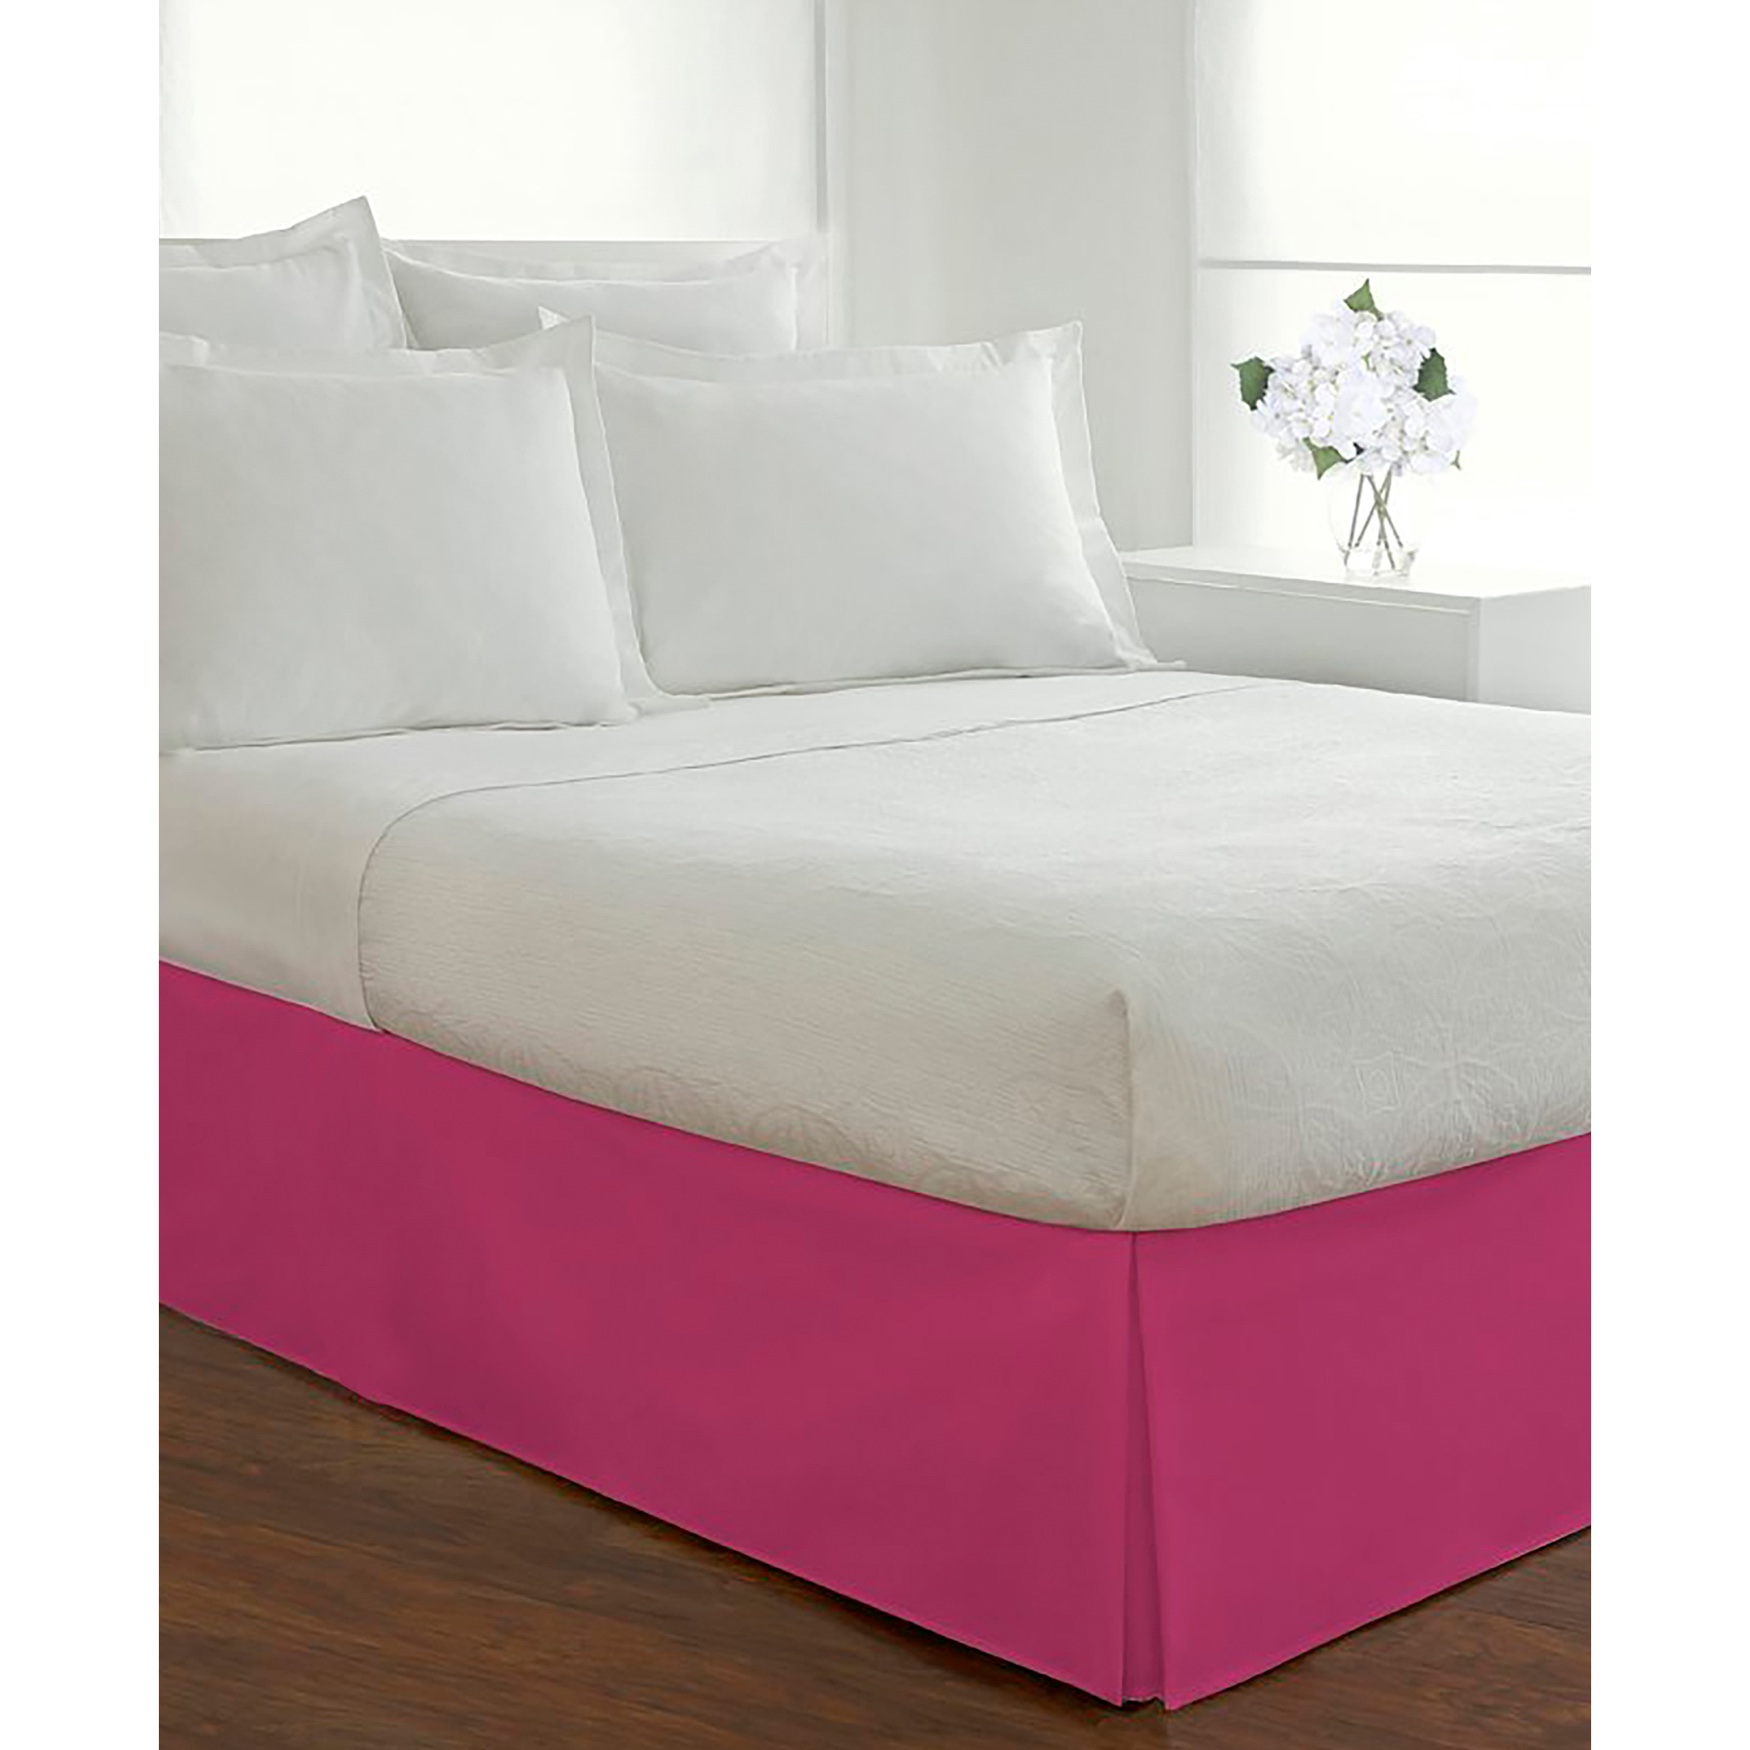 "Luxury Hotel Classic Tailored 14"" Drop Pink Bed Skirt,"